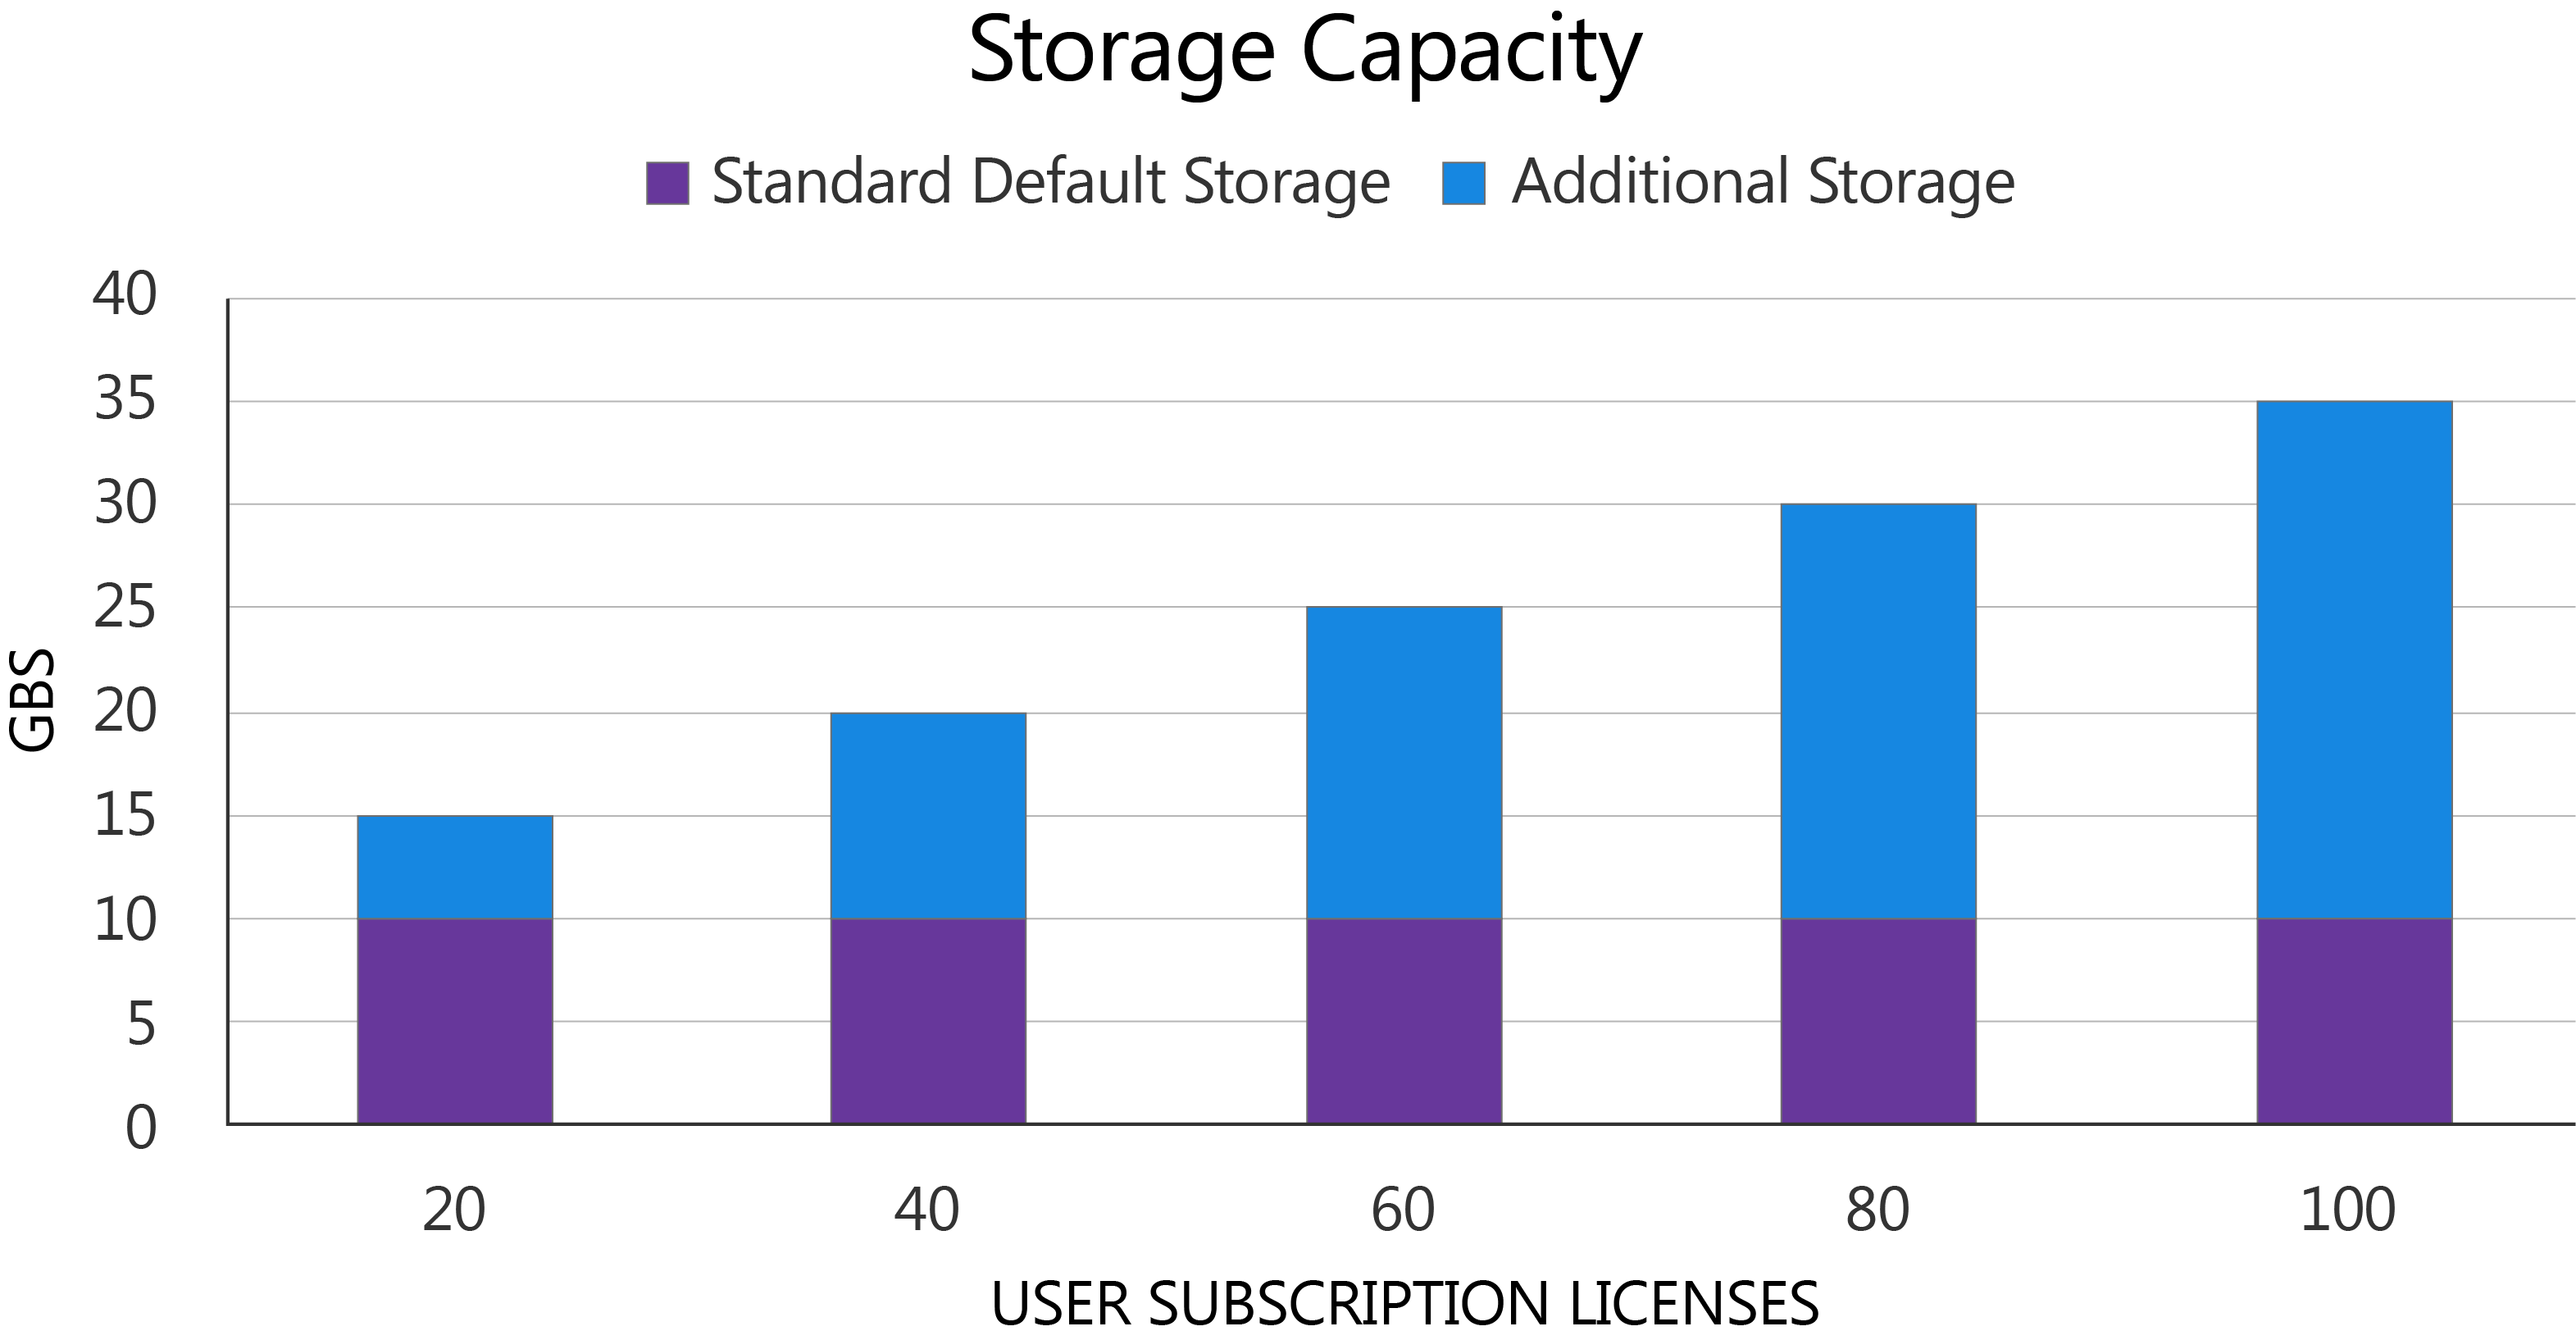 This graph showcases how additional GBs of storage are added as the number of user subscription licenses increases.